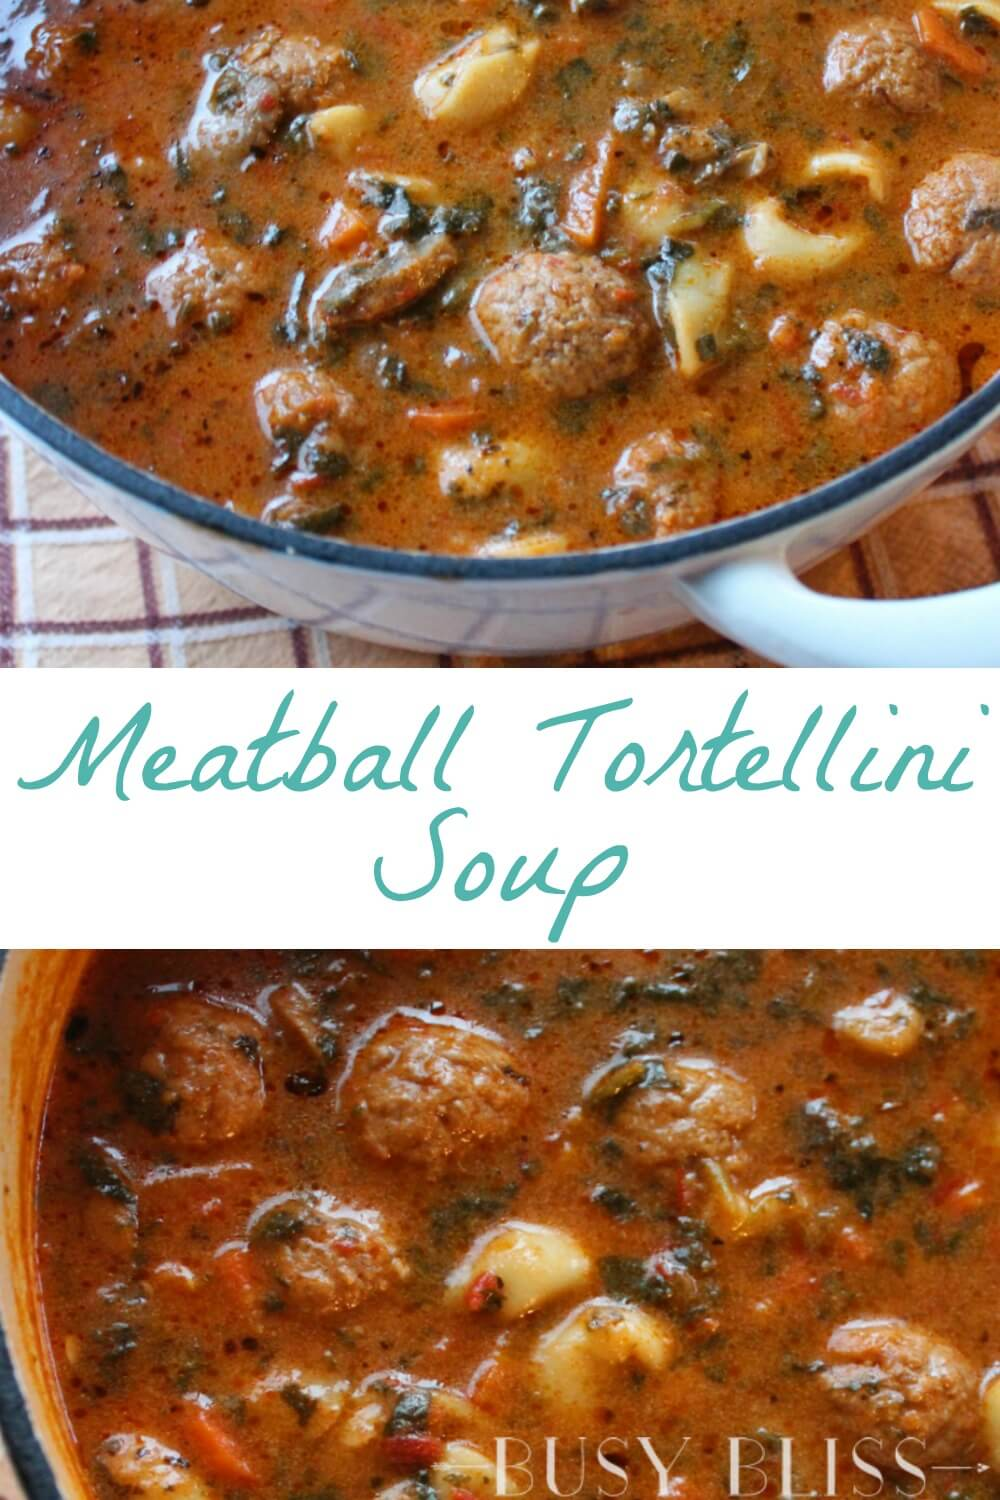 A meatball tortellini soup recipe that can easily be made in the slow cooker or stove top. The perfect weeknight recipe for busy families.